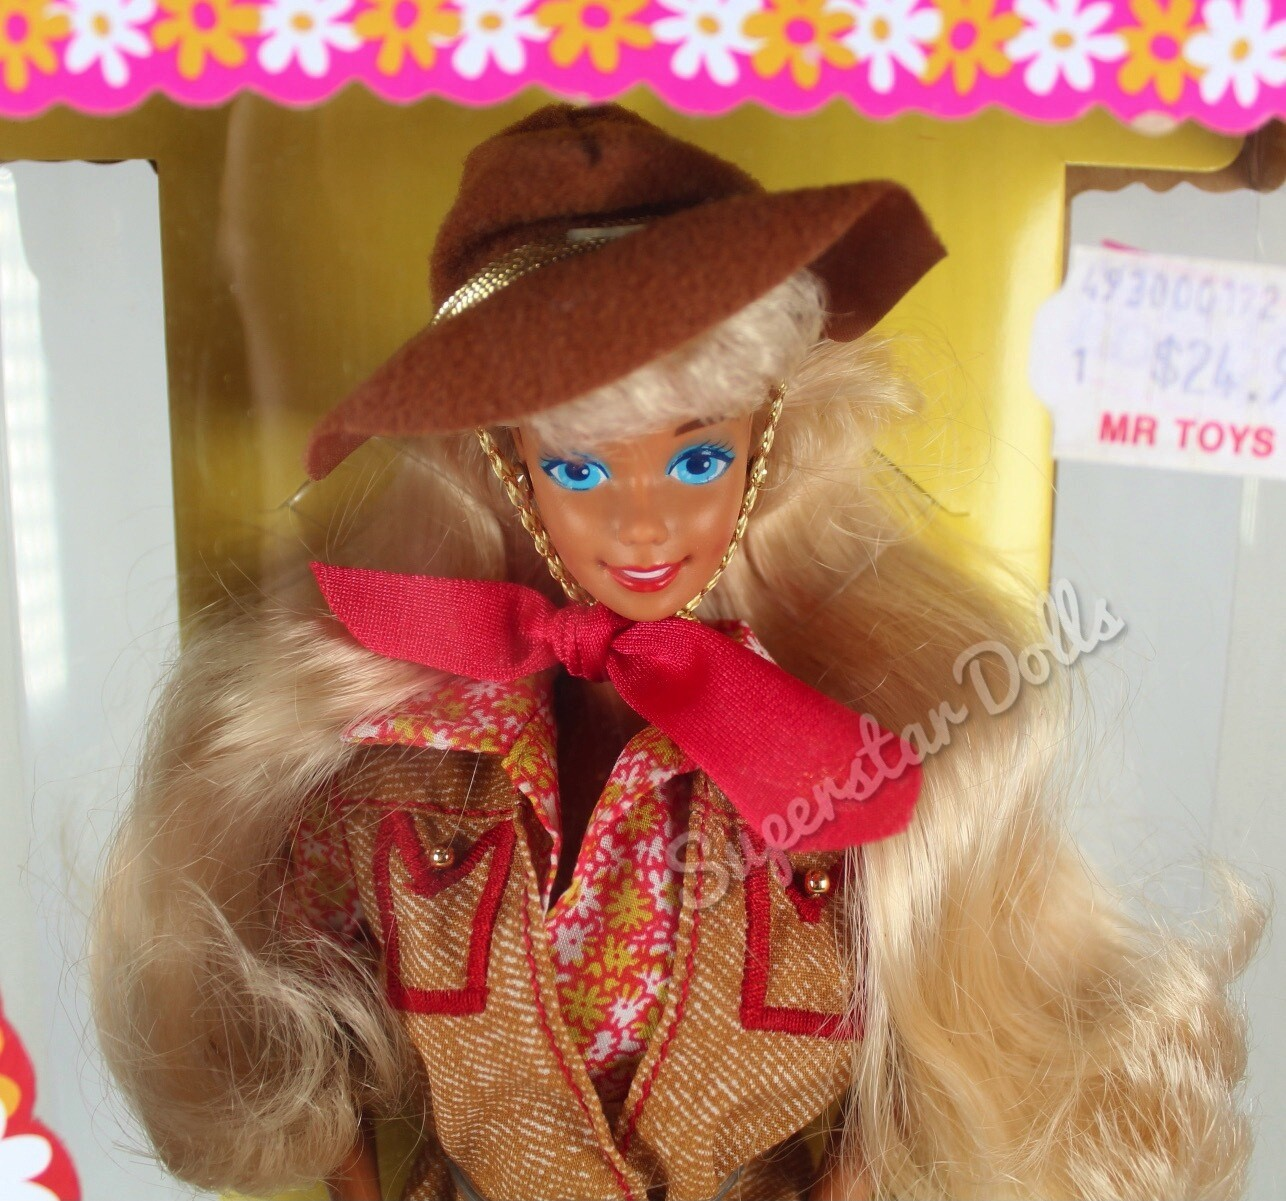 1992 Australian Barbie Doll from the Dolls of the World Collection